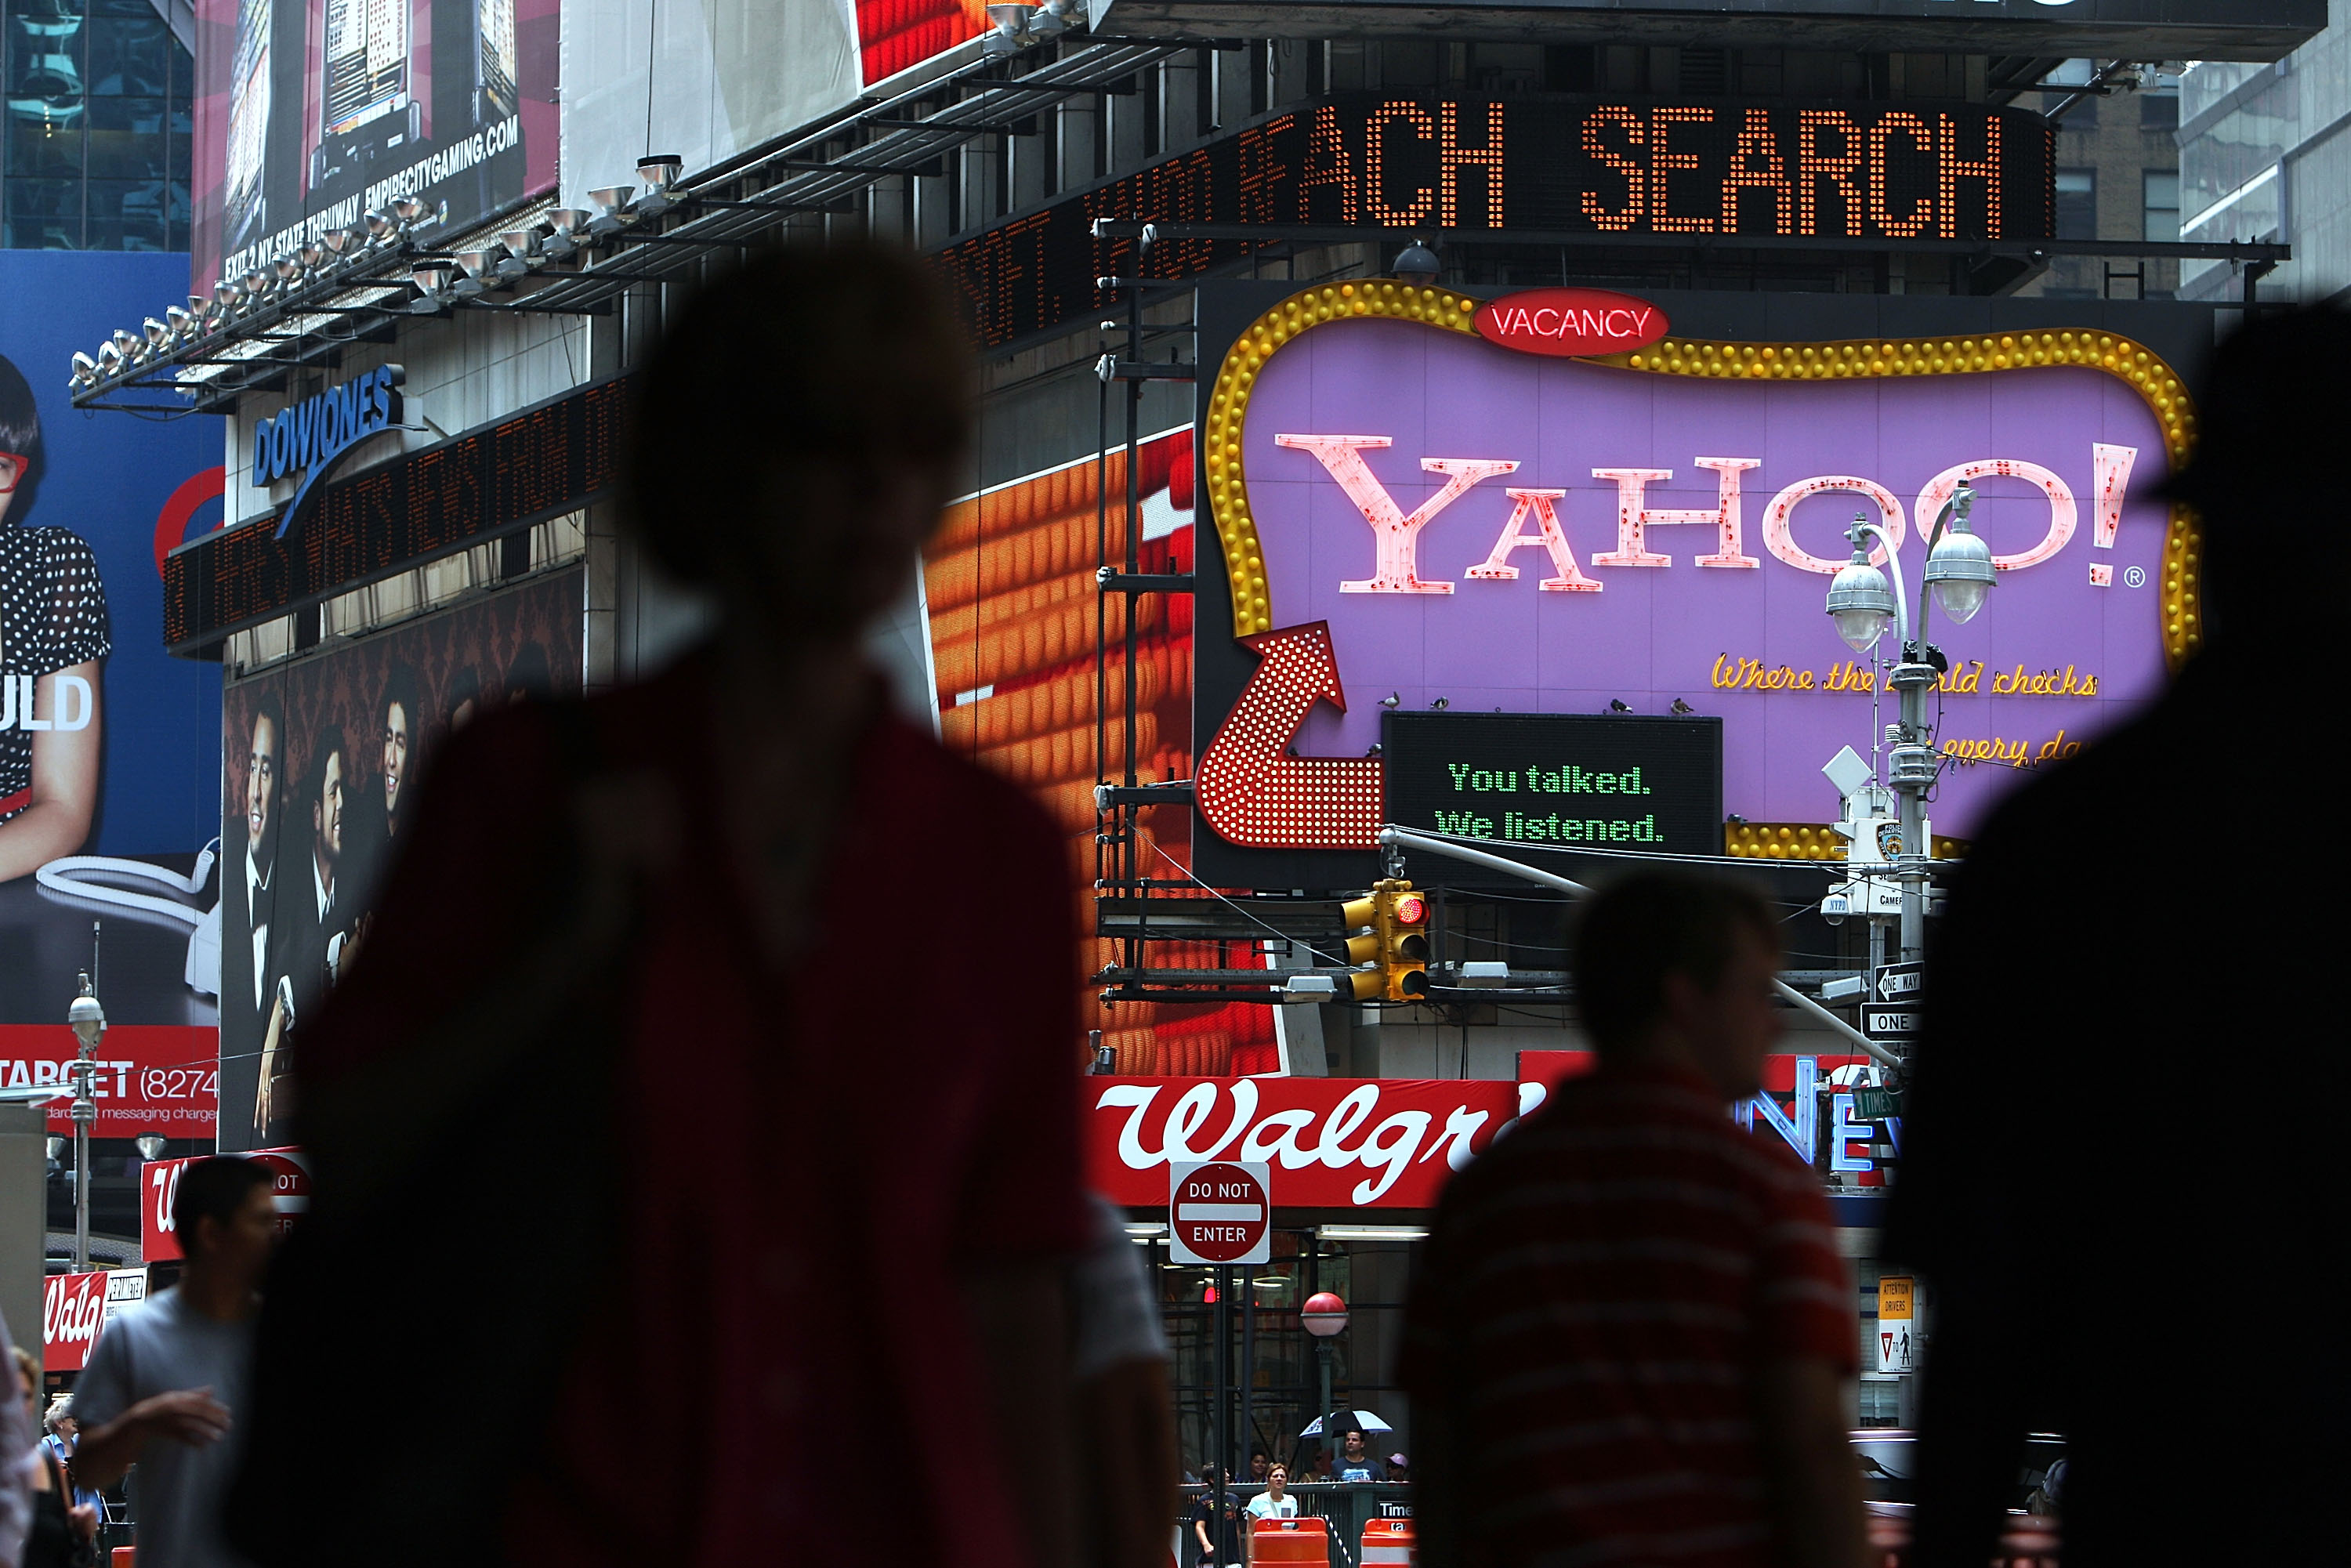 Marissa Mayer apologizes for Yahoo Mail outage, says access has been restored to 'almost everyone'